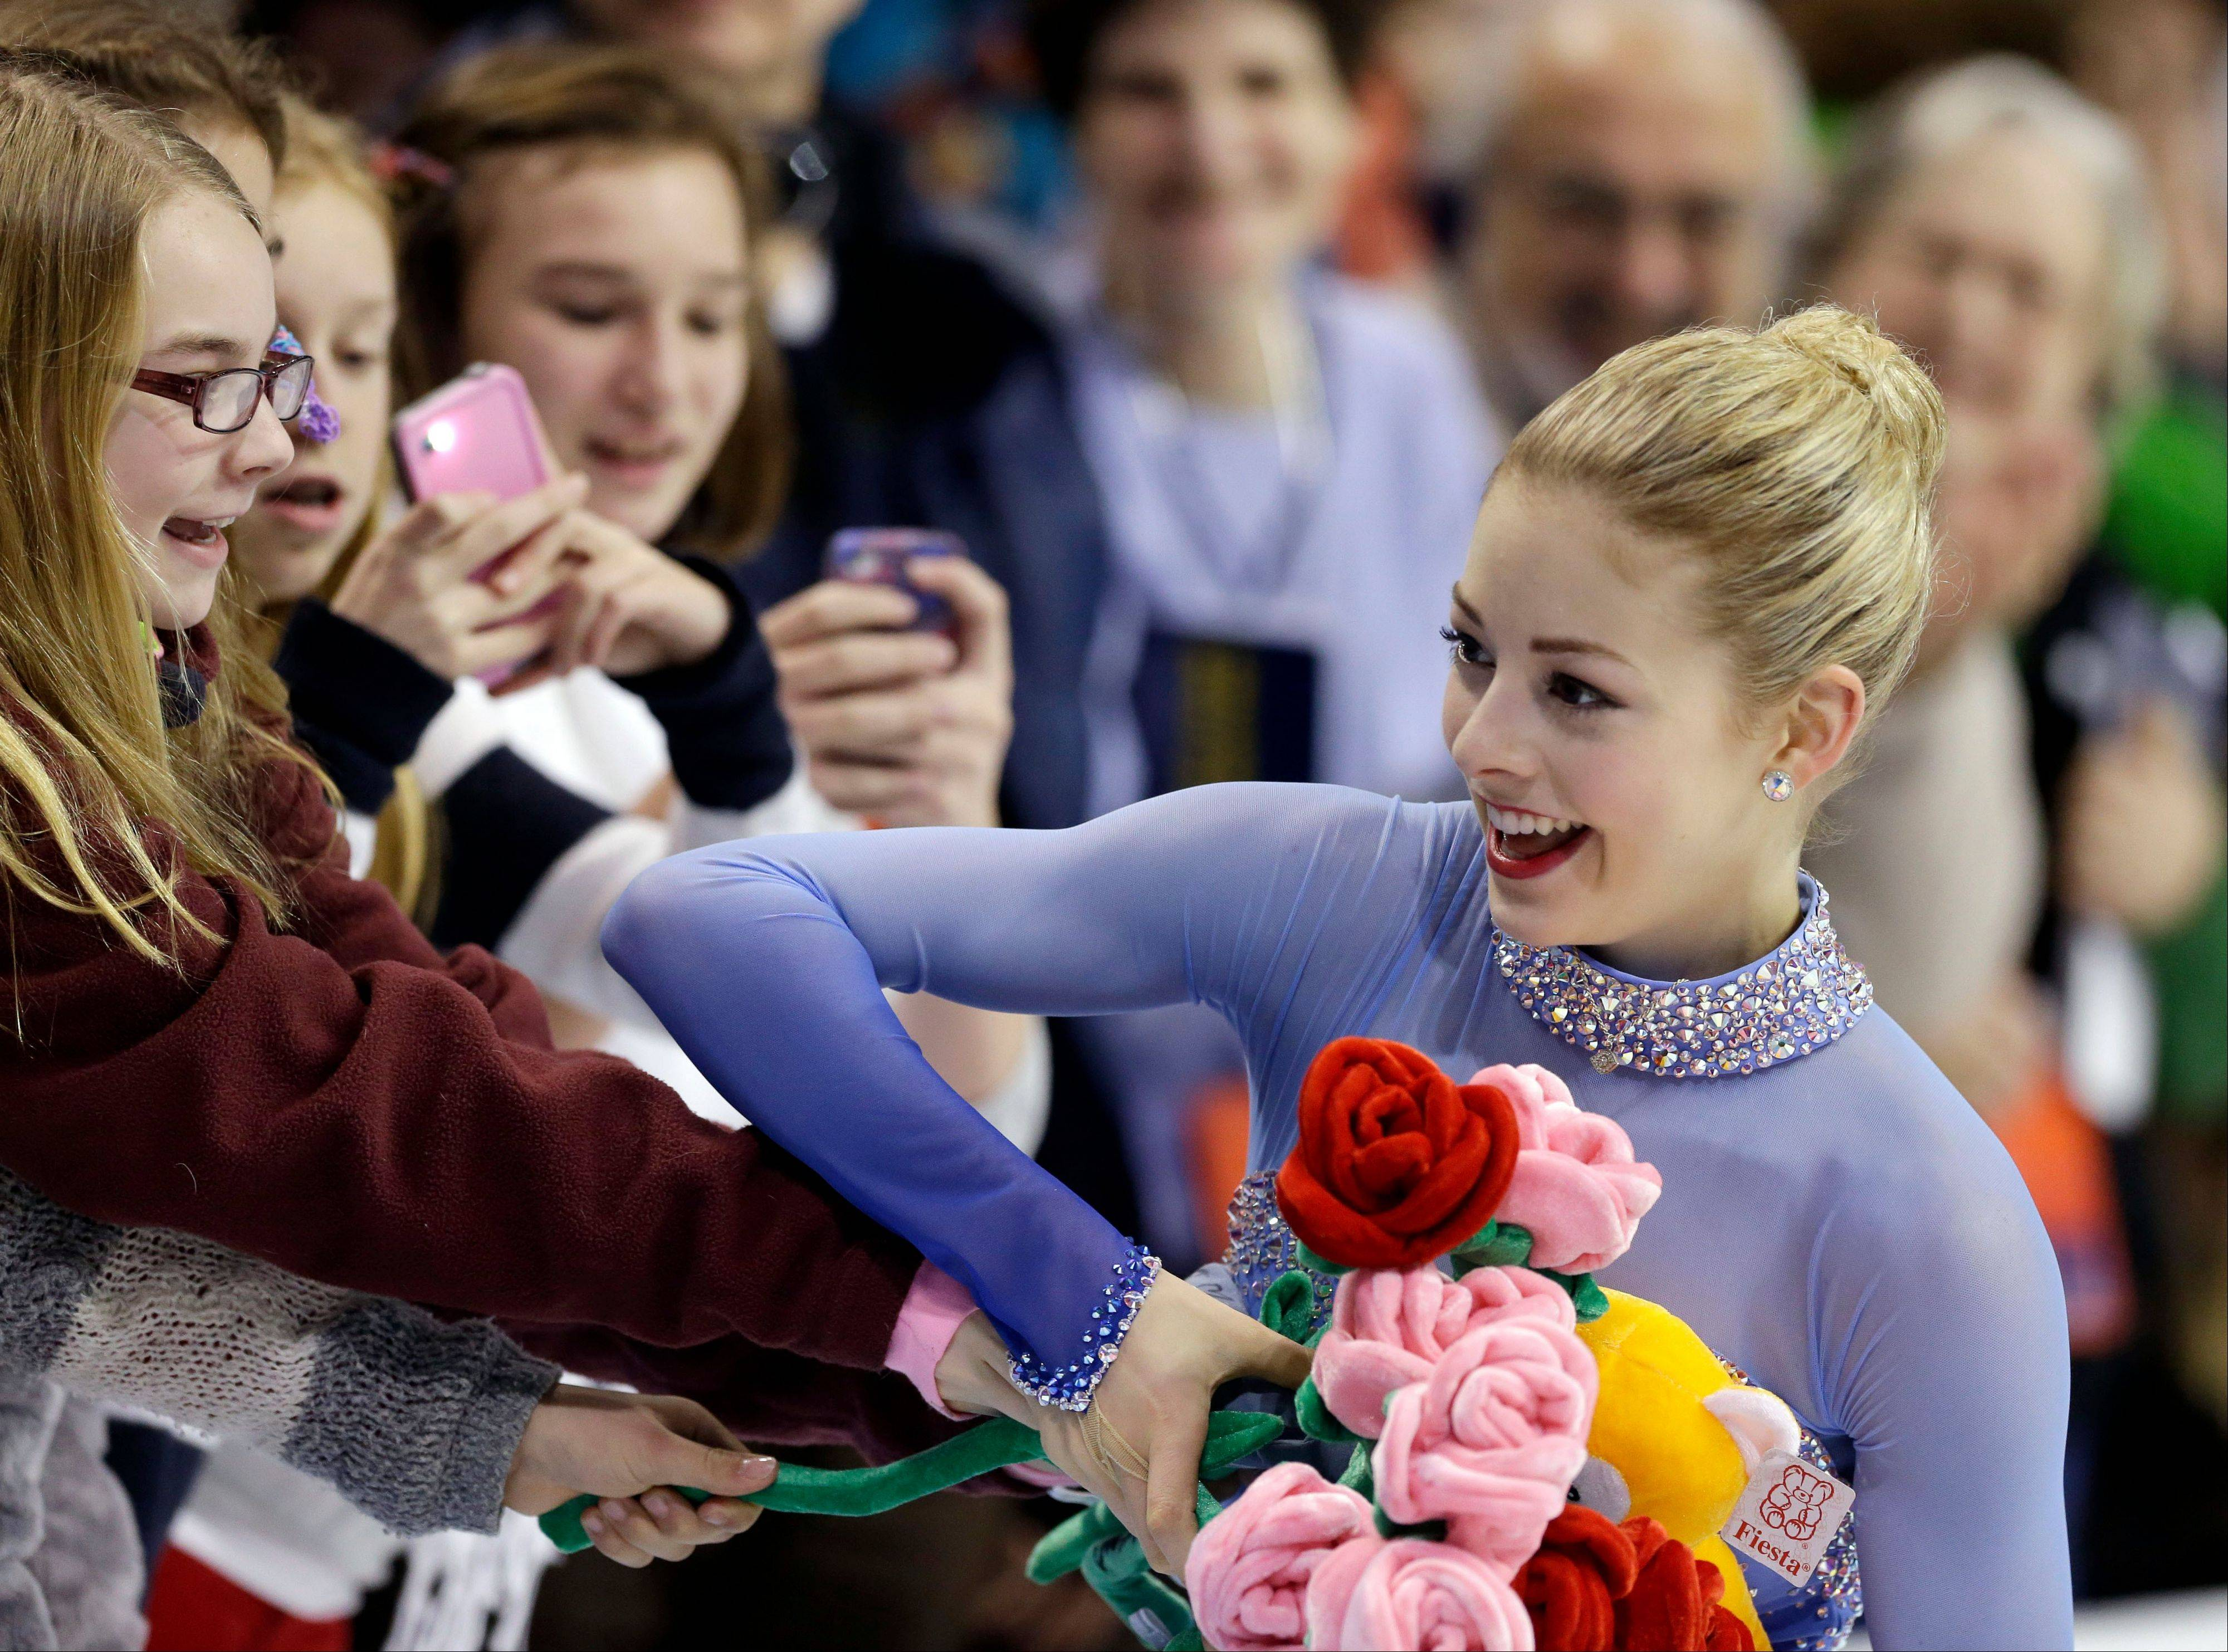 Gracie Gold receives flowers from fans after skating in the women's free skate at the U.S. Figure Skating Championships Saturday.